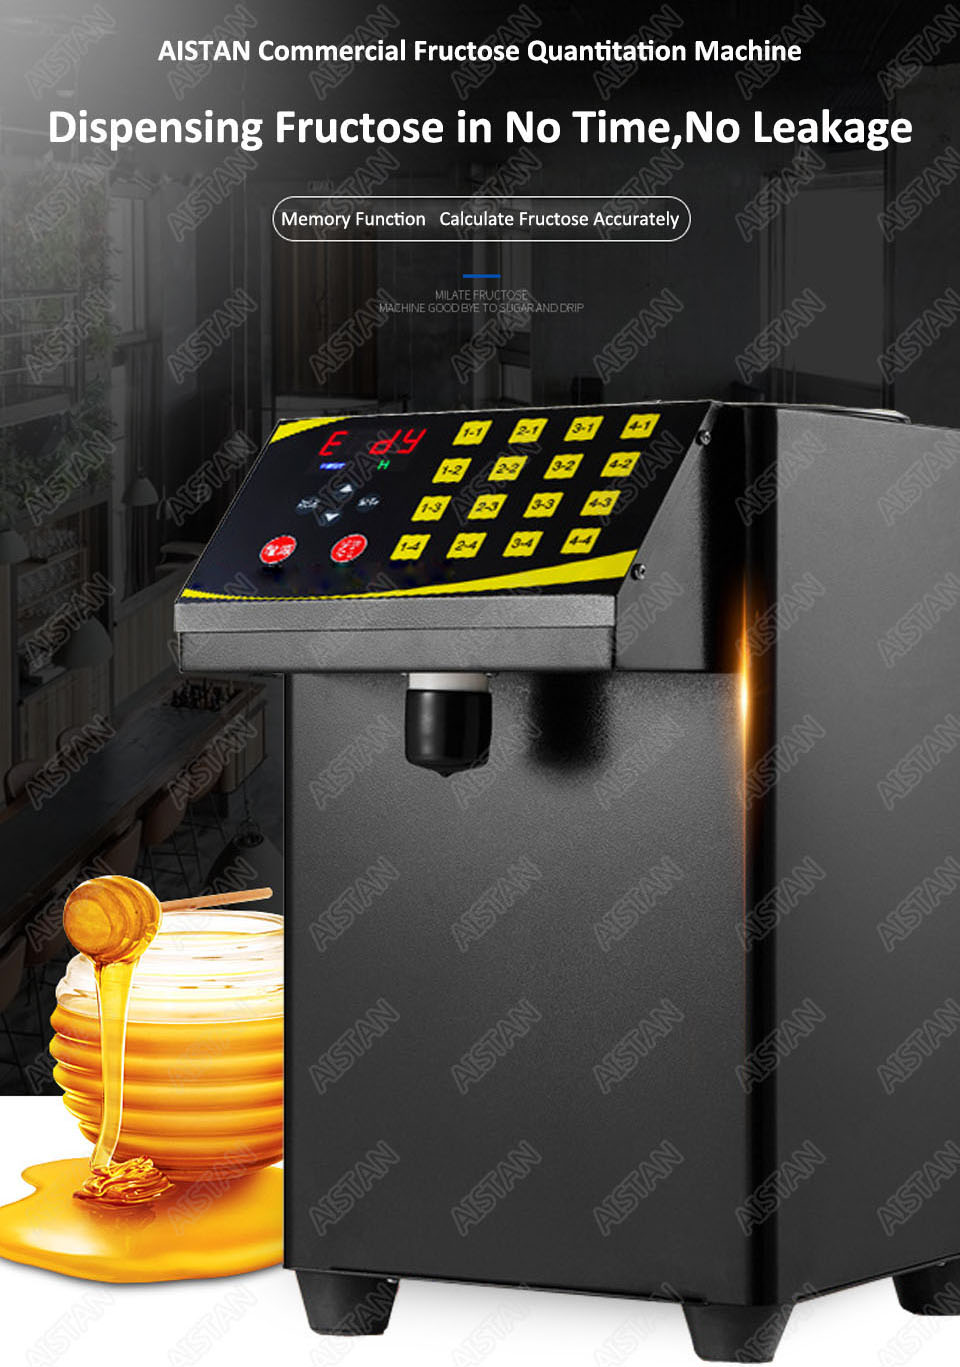 RC16 8L stainless steel commercial fructose quantitation machine for milk tea shop and coffee shop 6